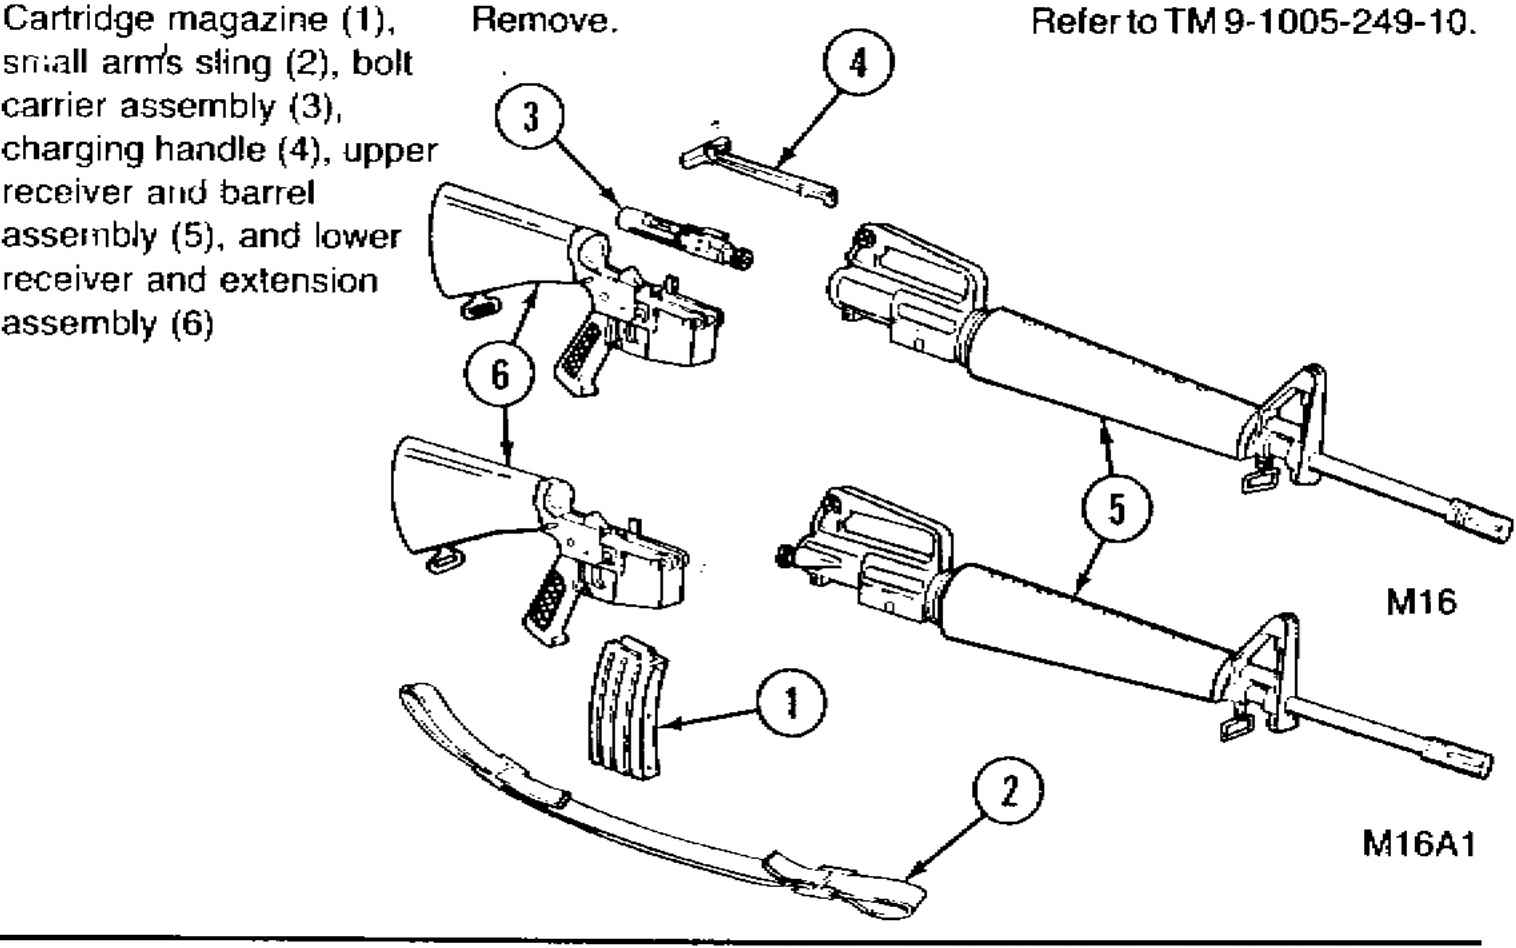 Major Components Of Mma Rifle